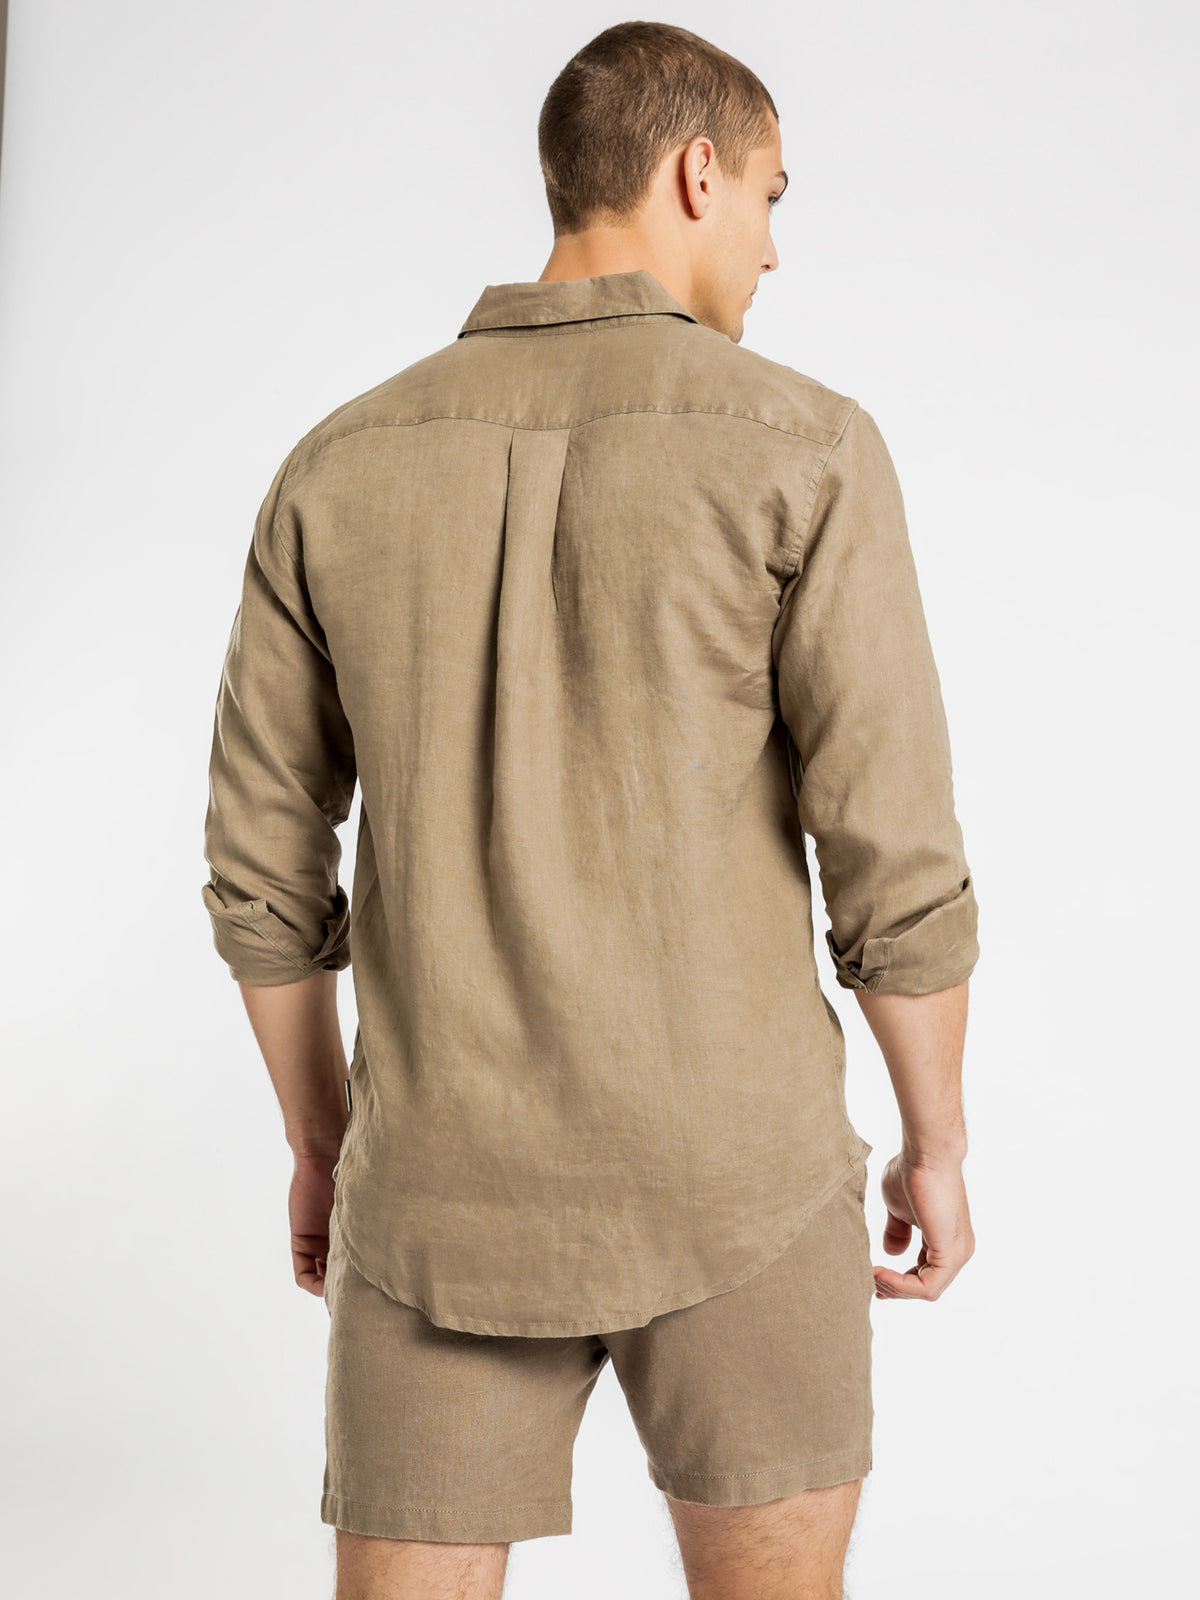 Nelson Linen Long Sleeve Shirt in Khaki